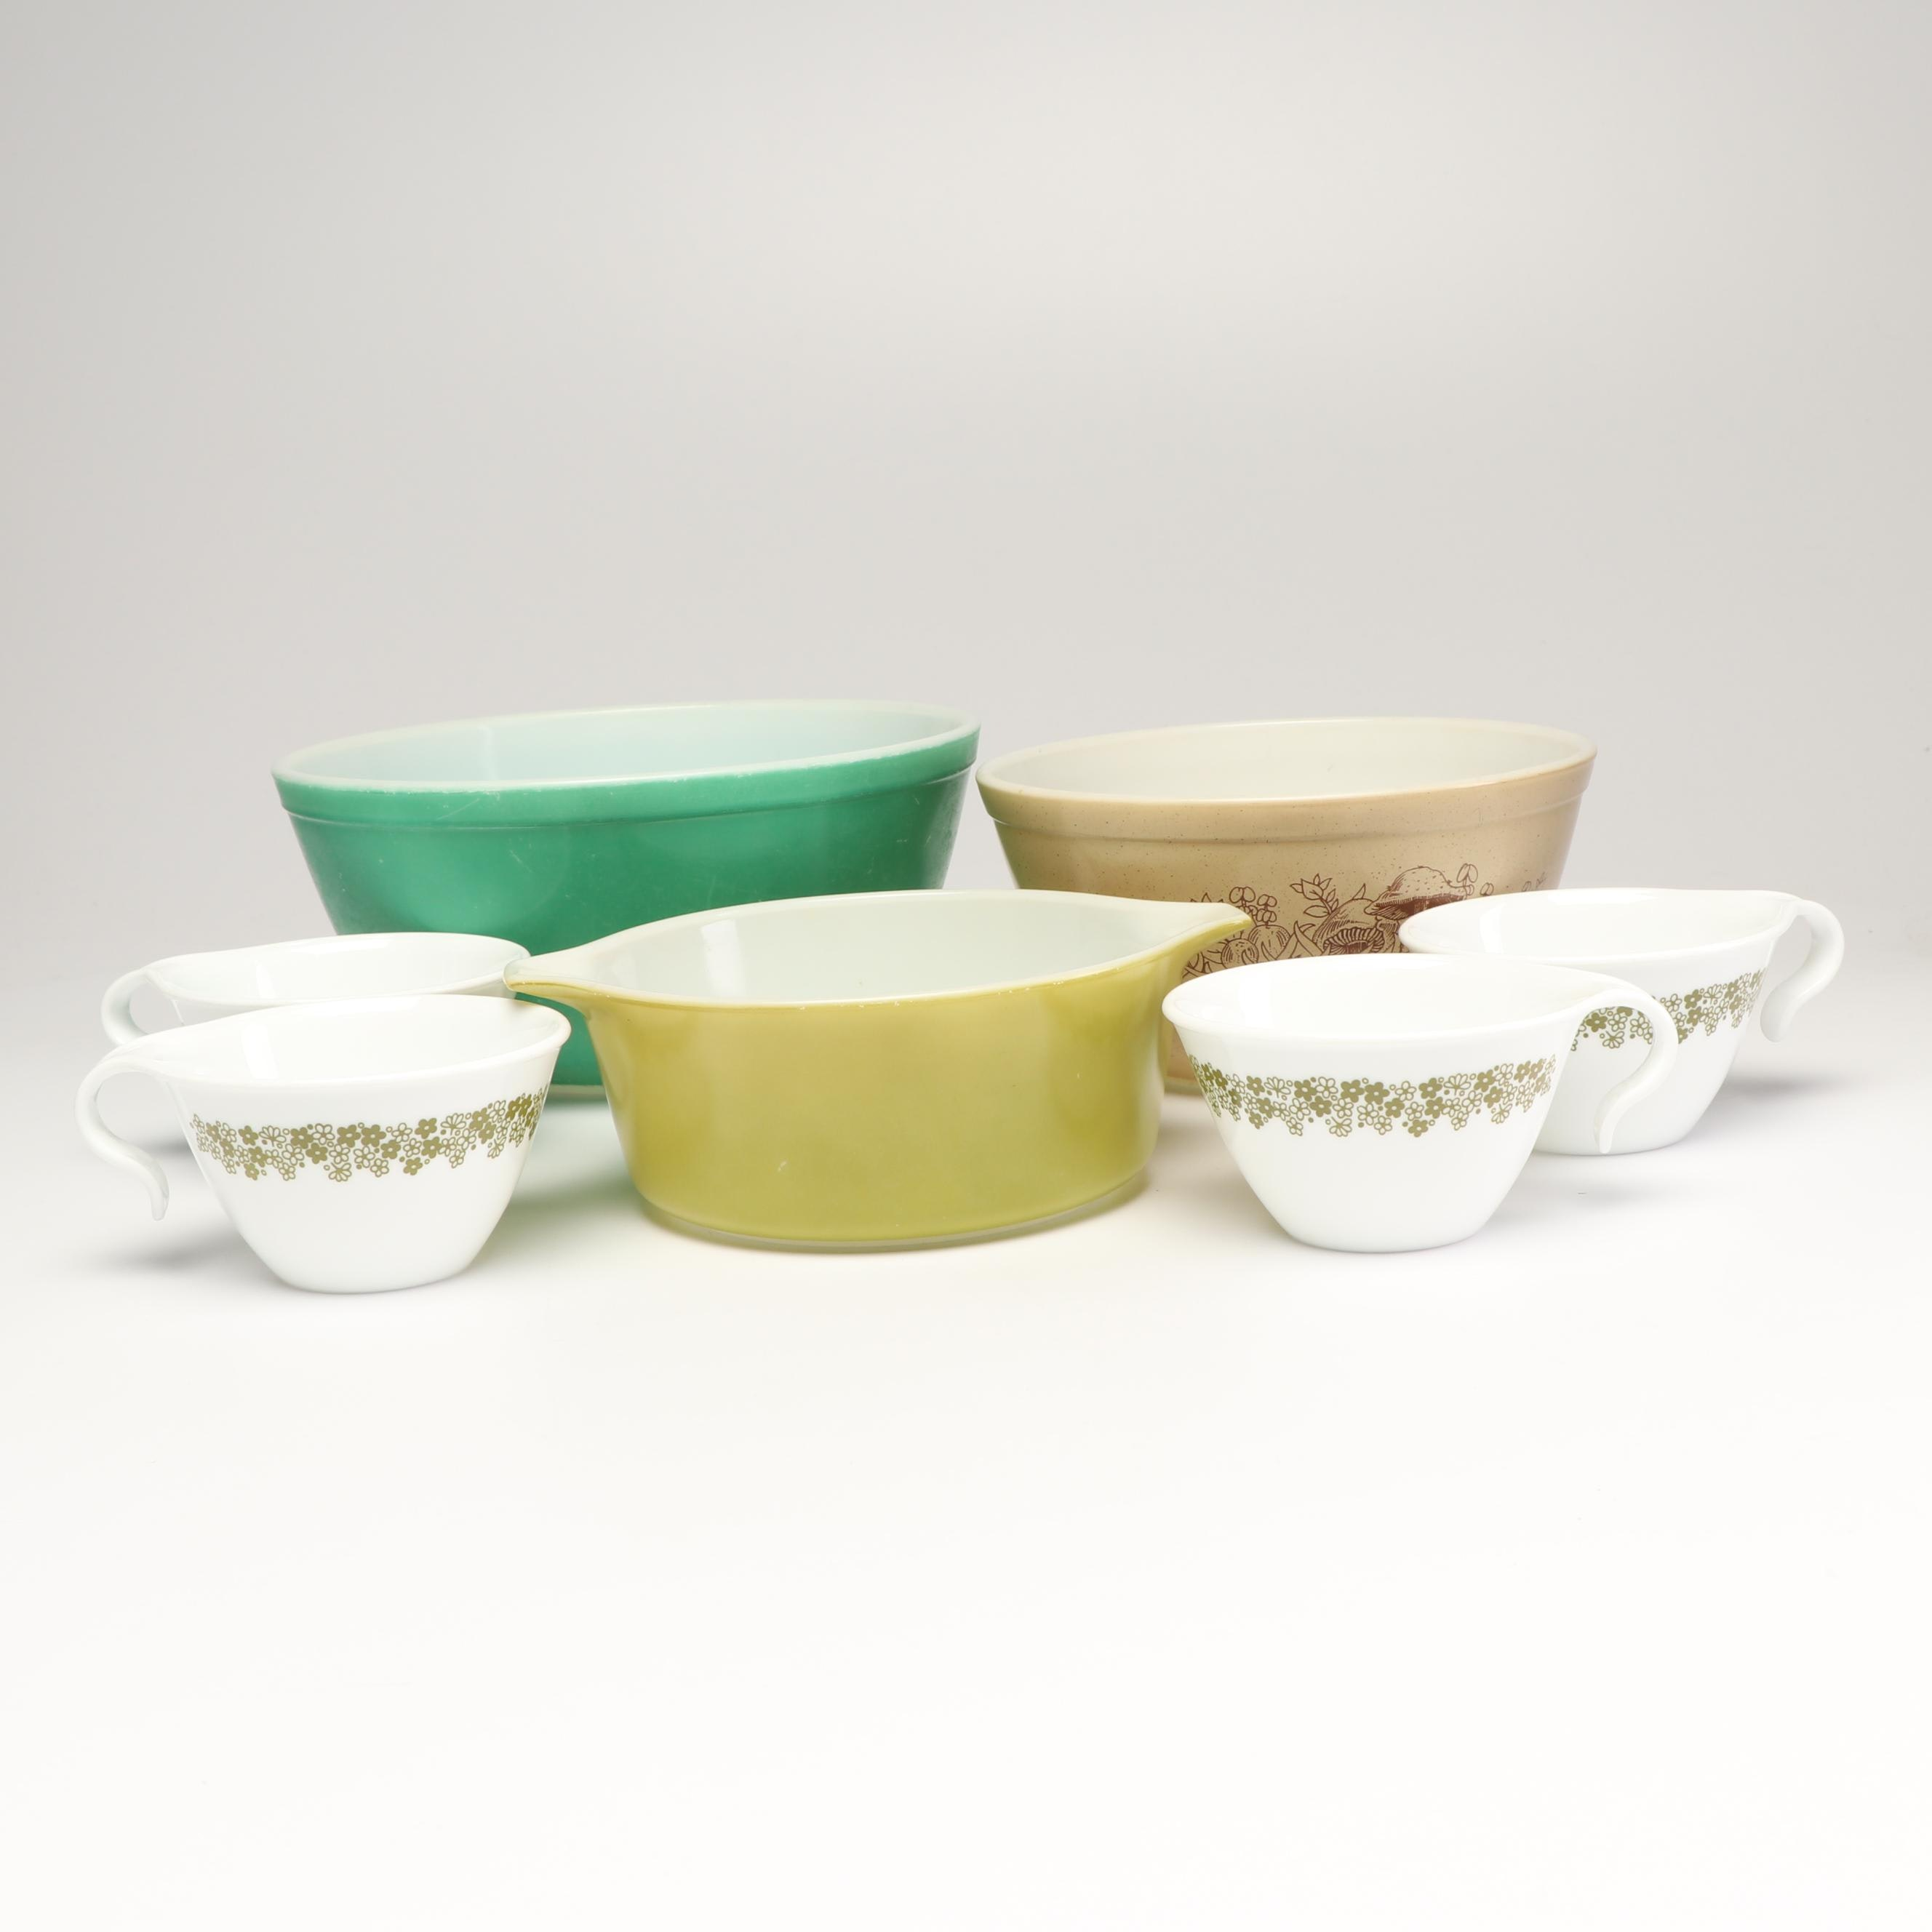 Pryex and Other Corning Glass Bowls, 1970s-1980s